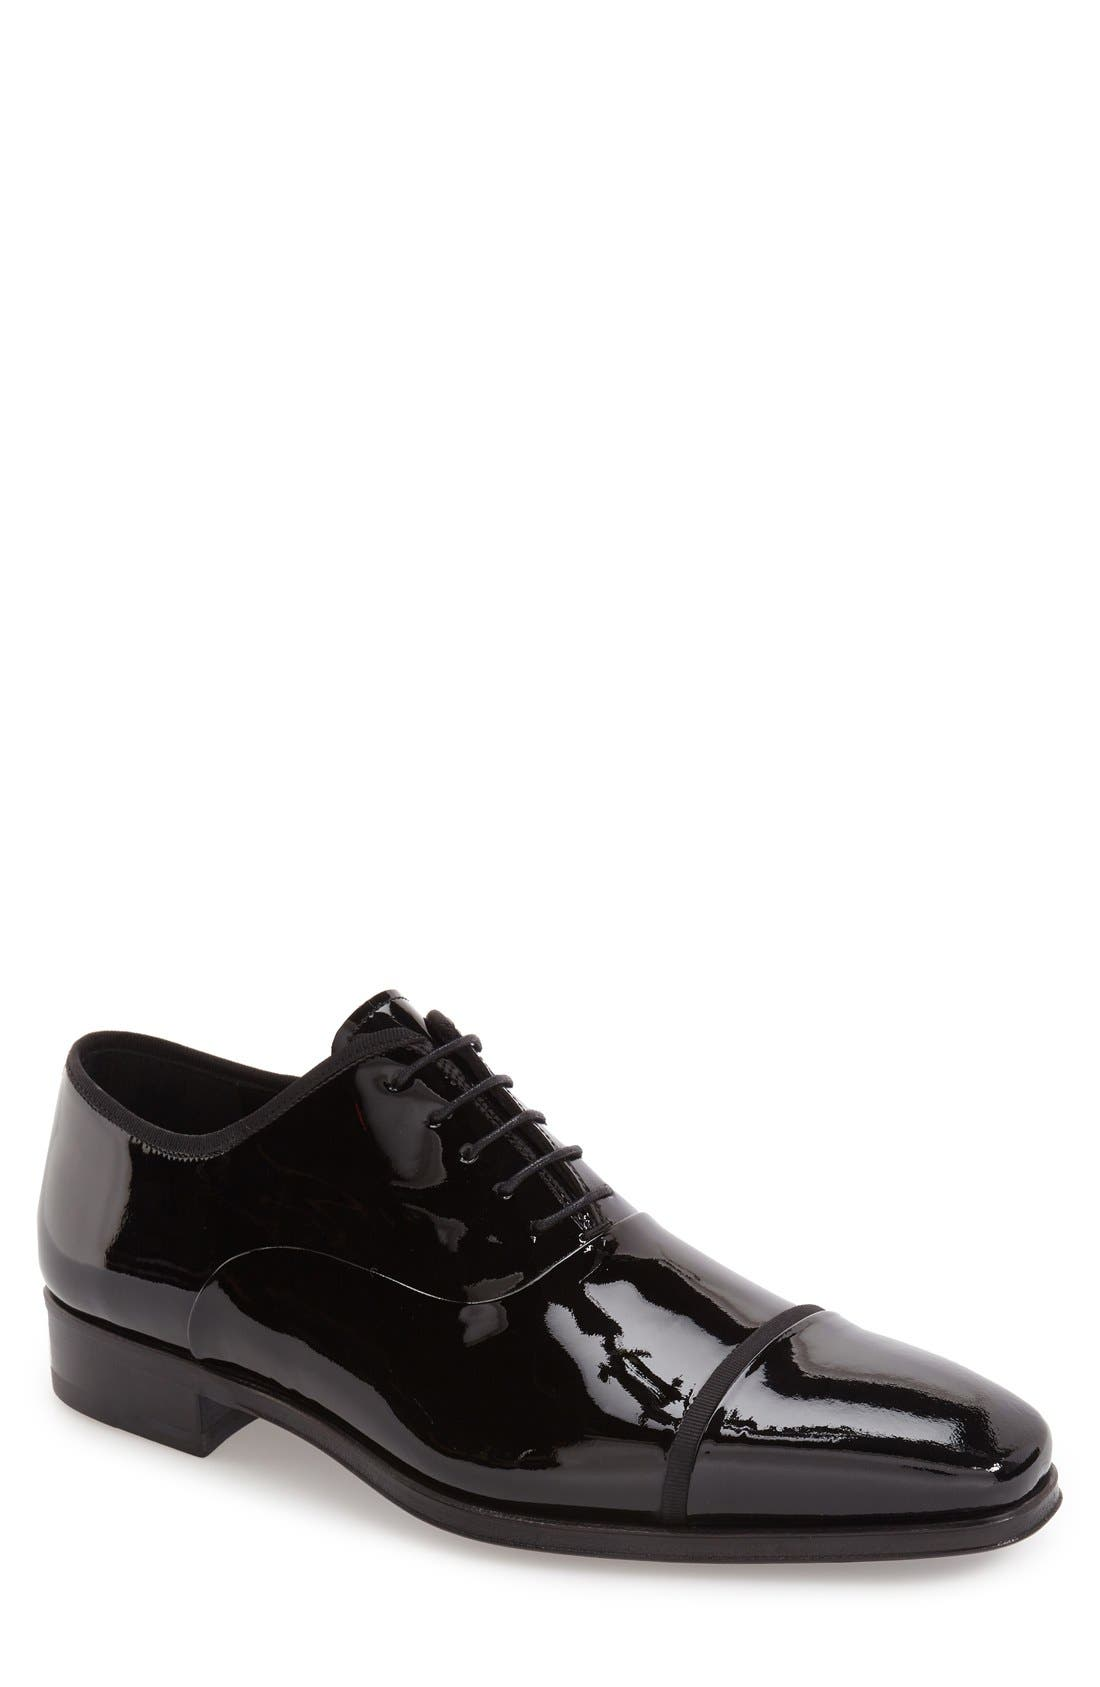 'Denali' Cap Toe Oxford,                         Main,                         color, Black